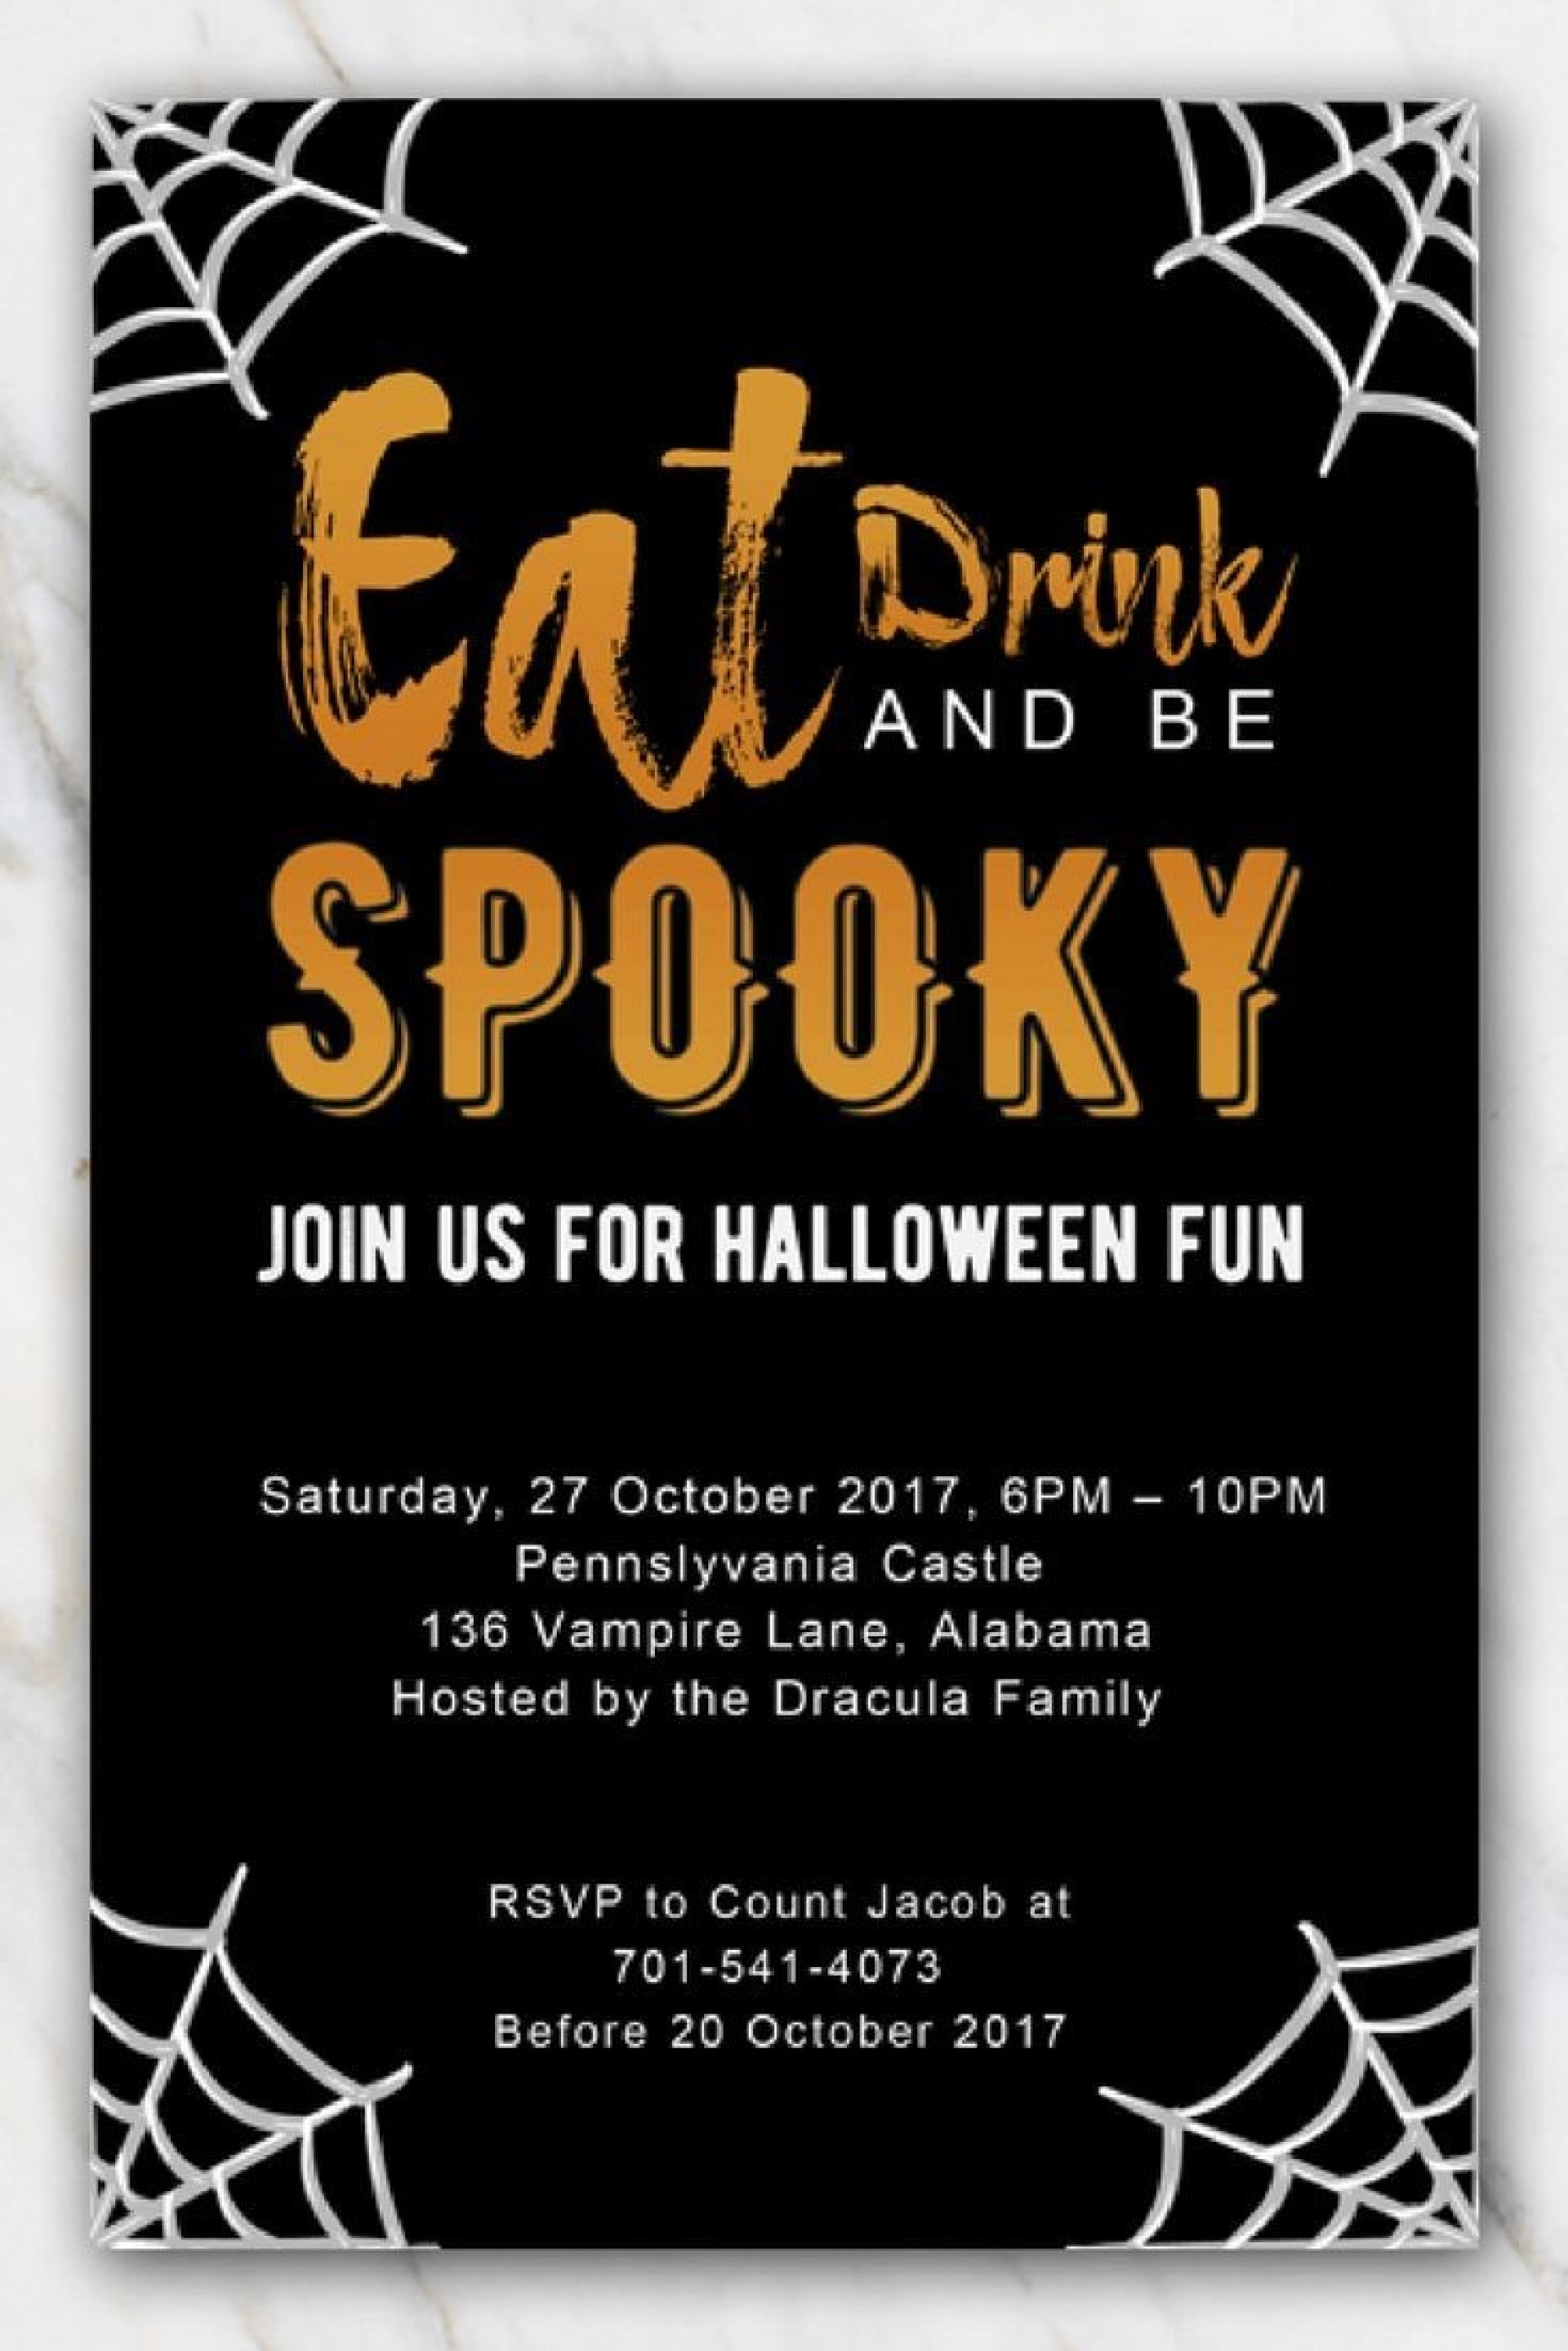 002 Outstanding Free Halloween Invite Template Highest Clarity  Templates Party Invitation For Word1920